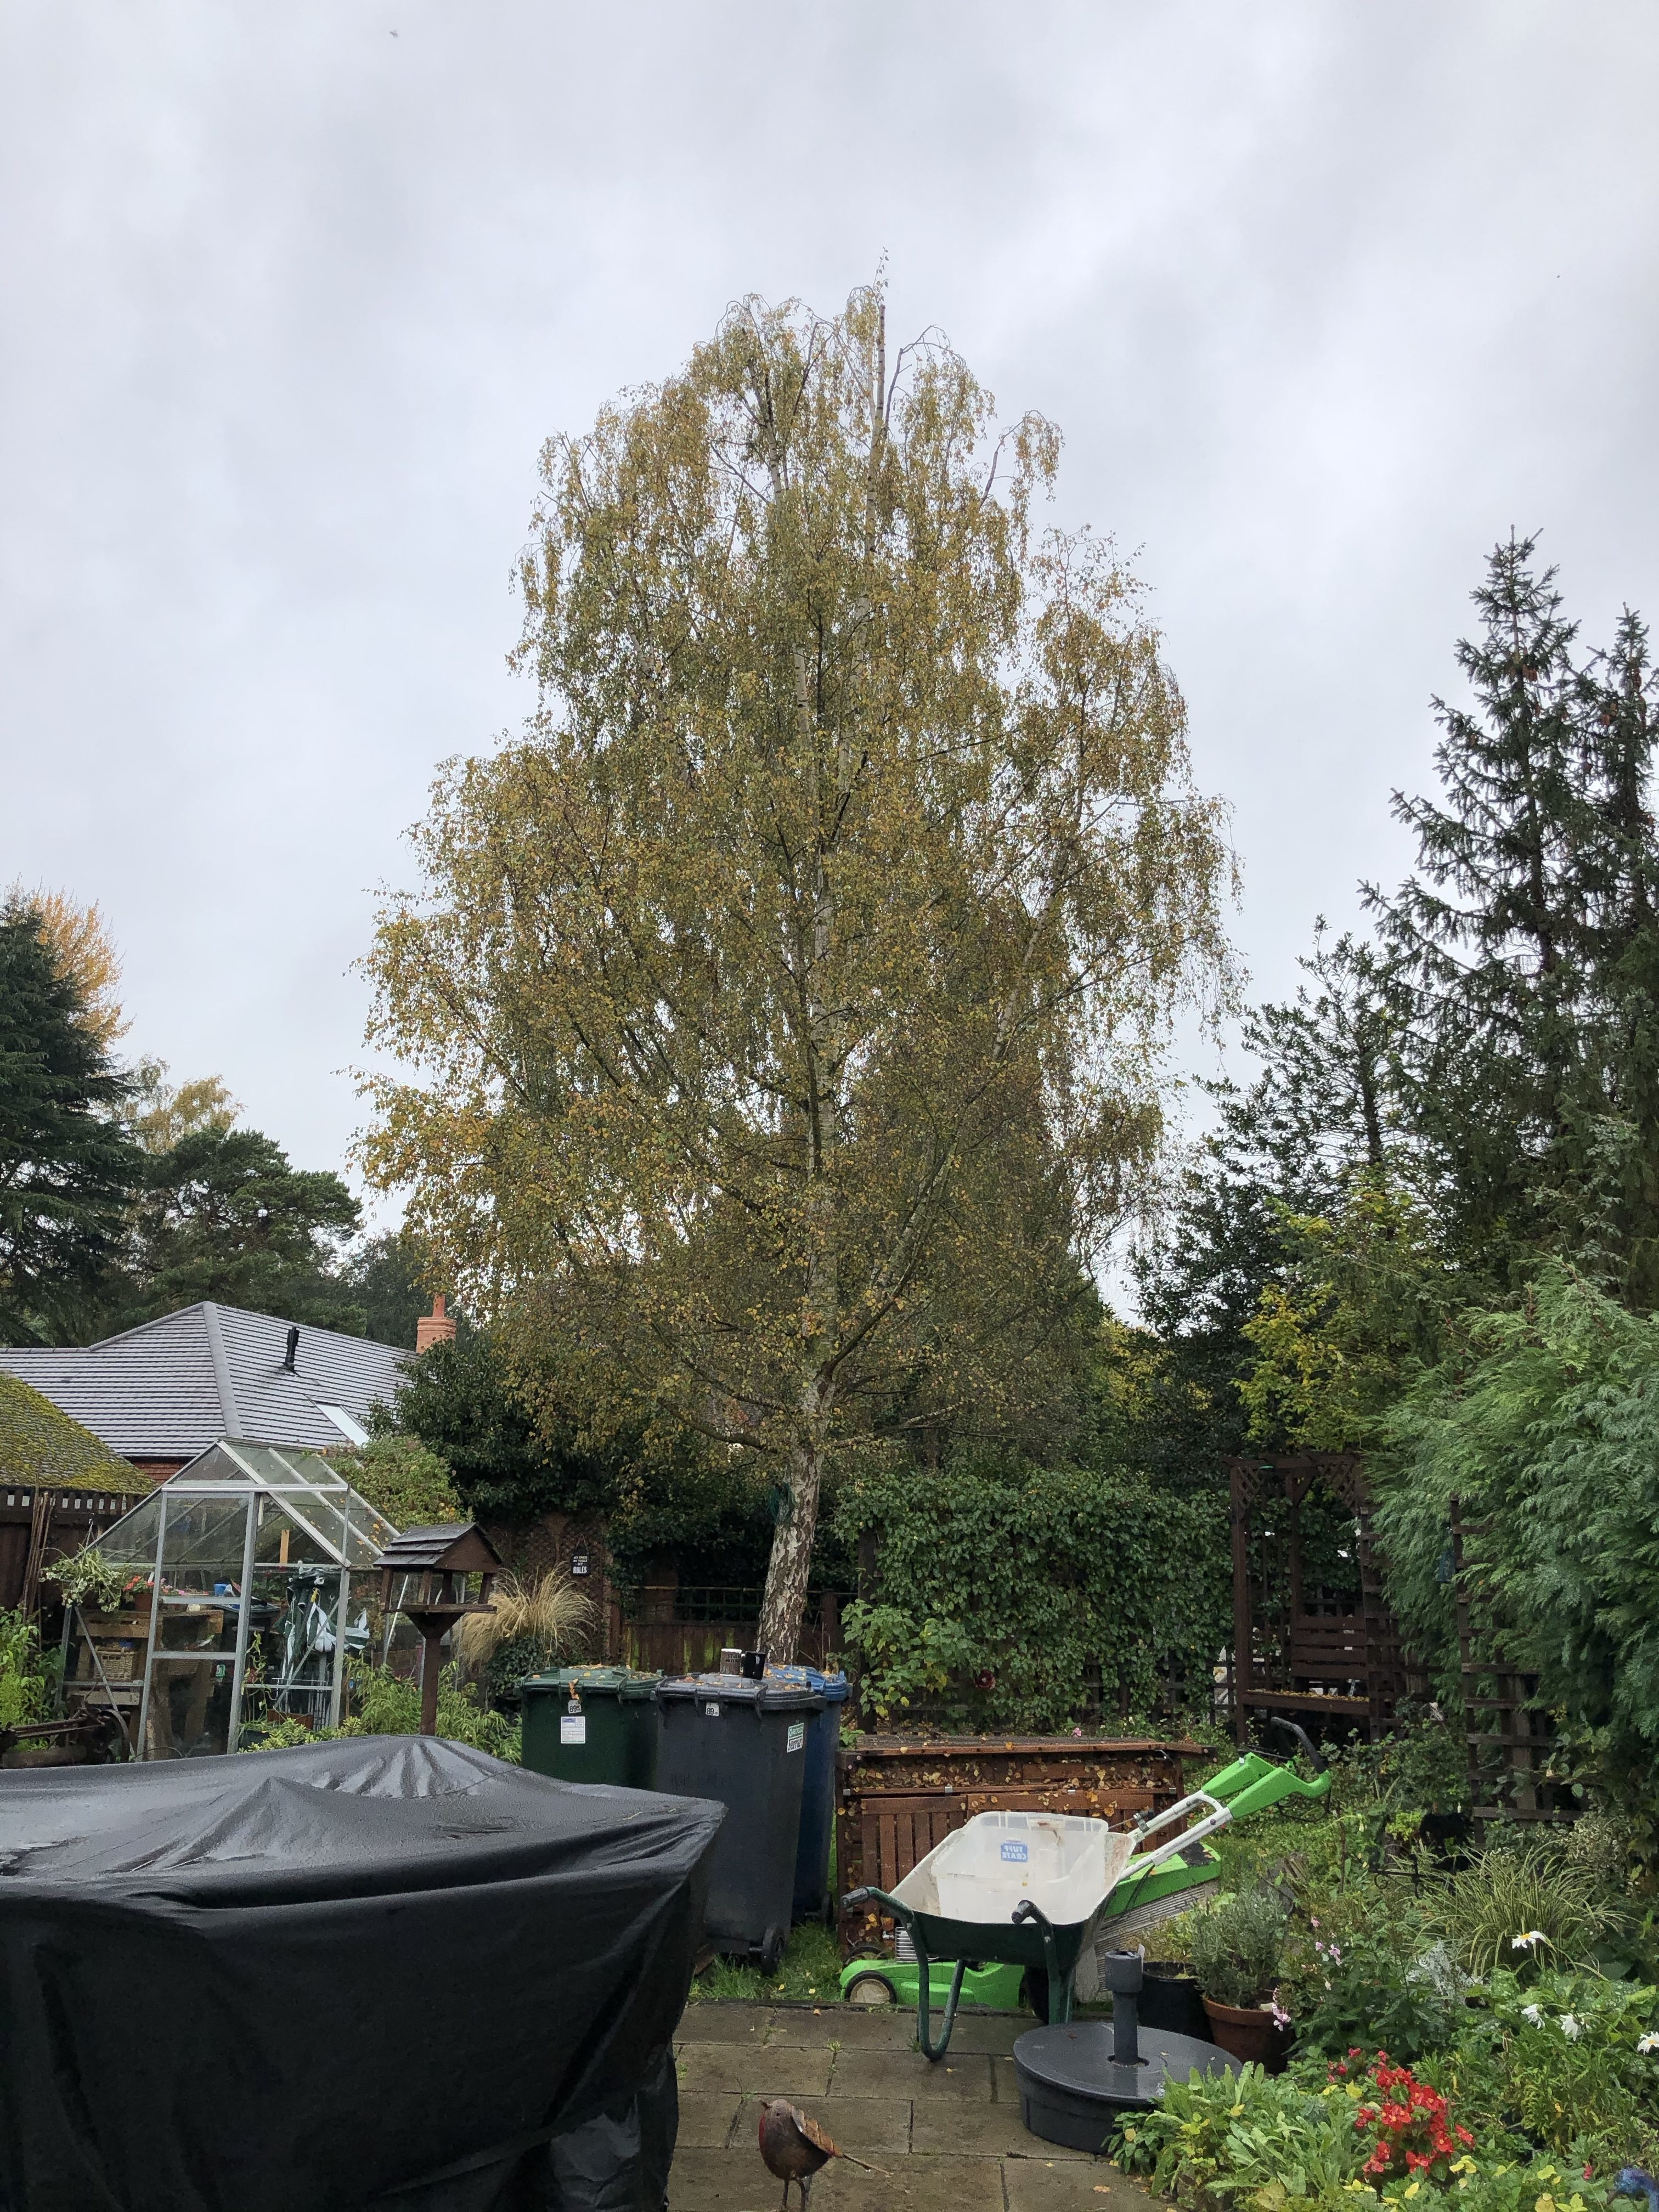 A nice Birch reduction for a client in a conservation area.